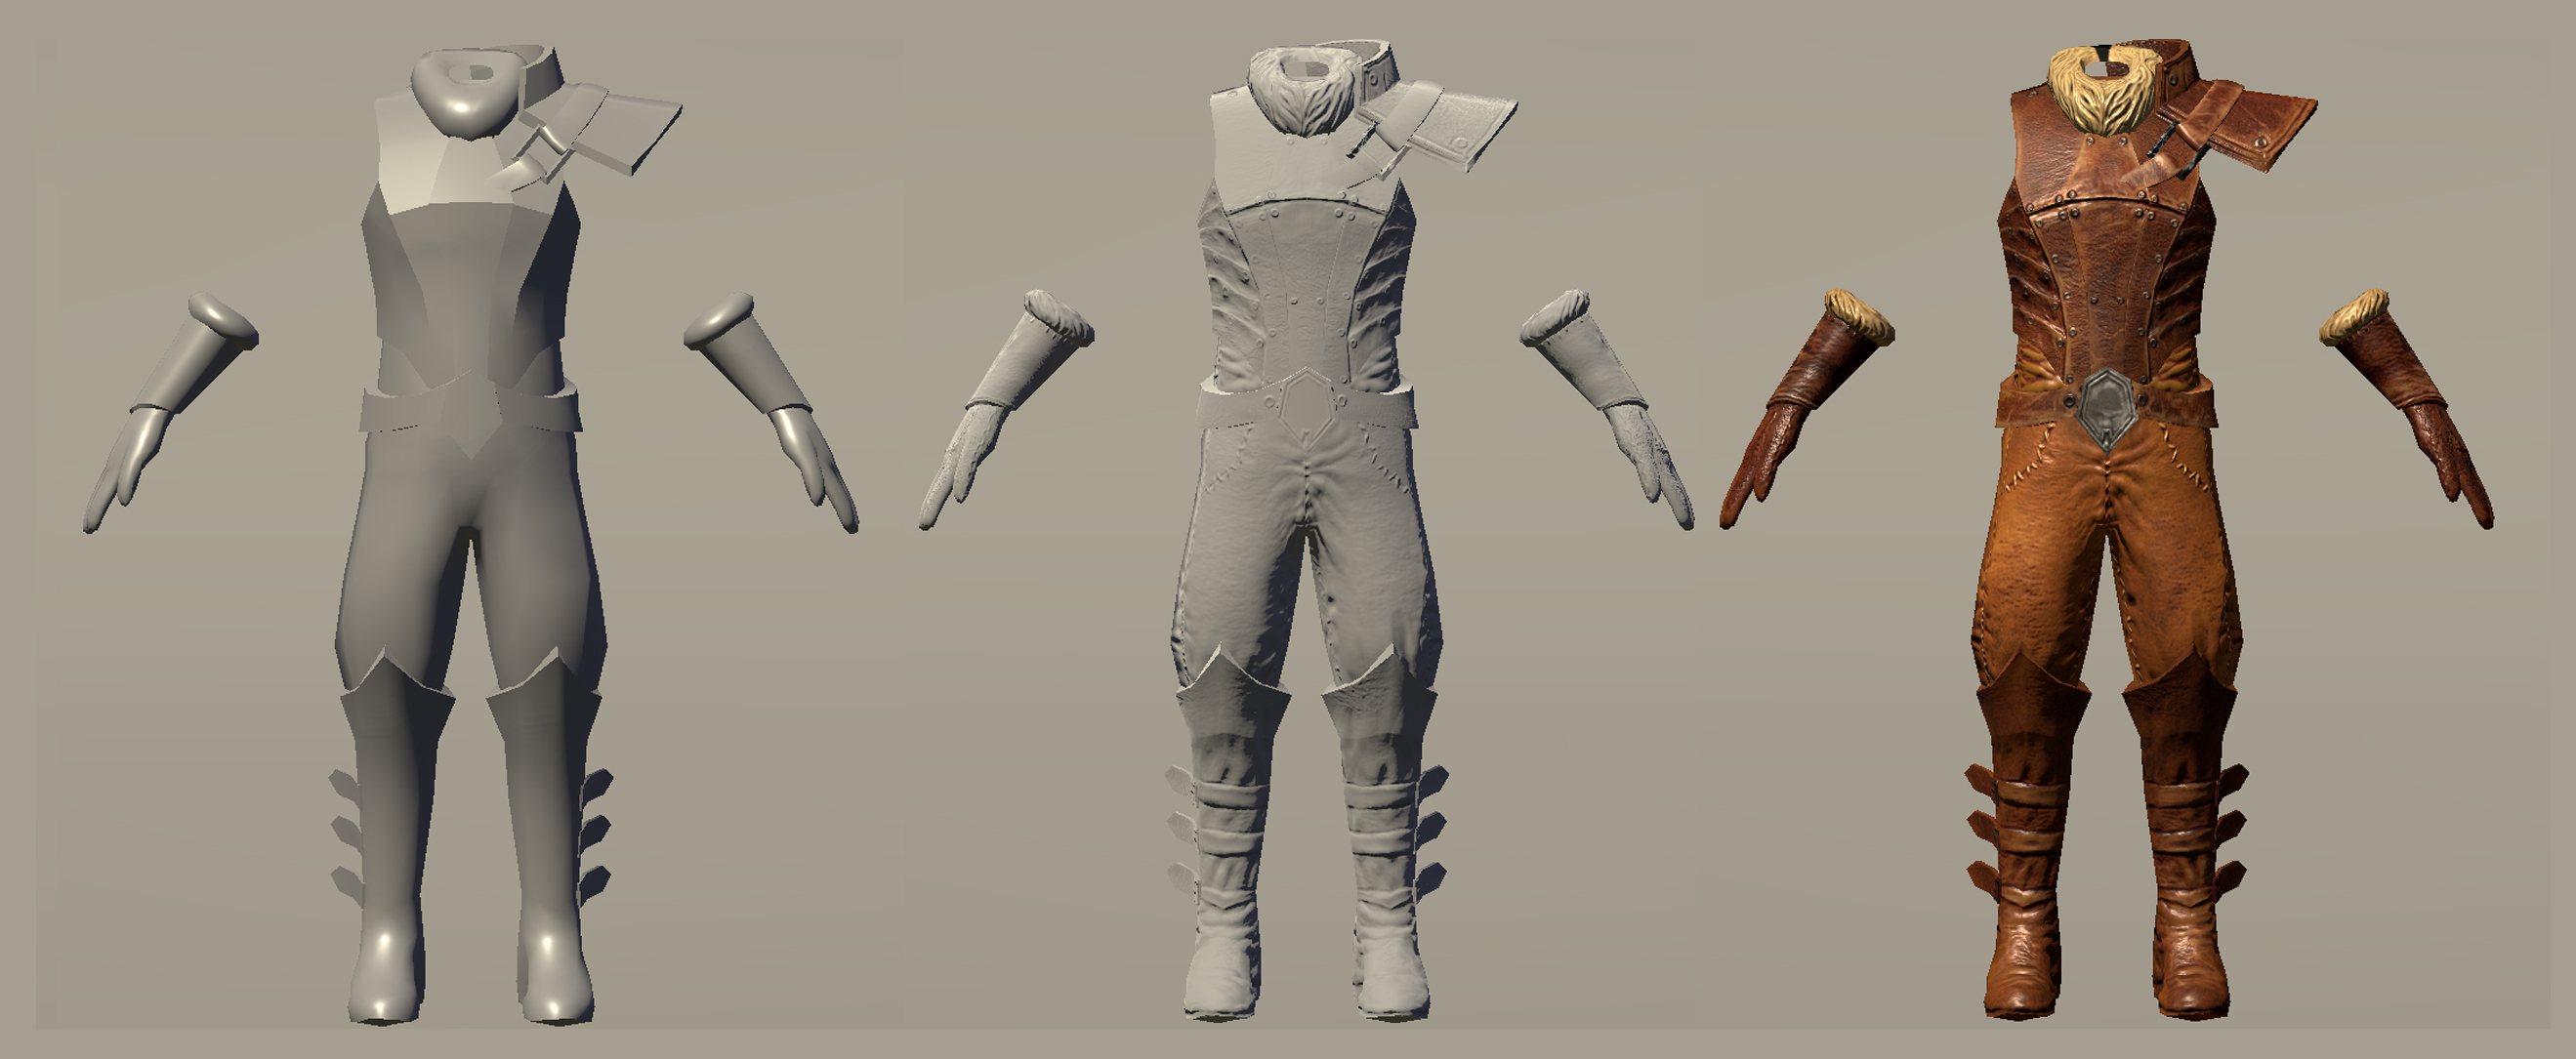 Leather Armor Low Poly To Completed